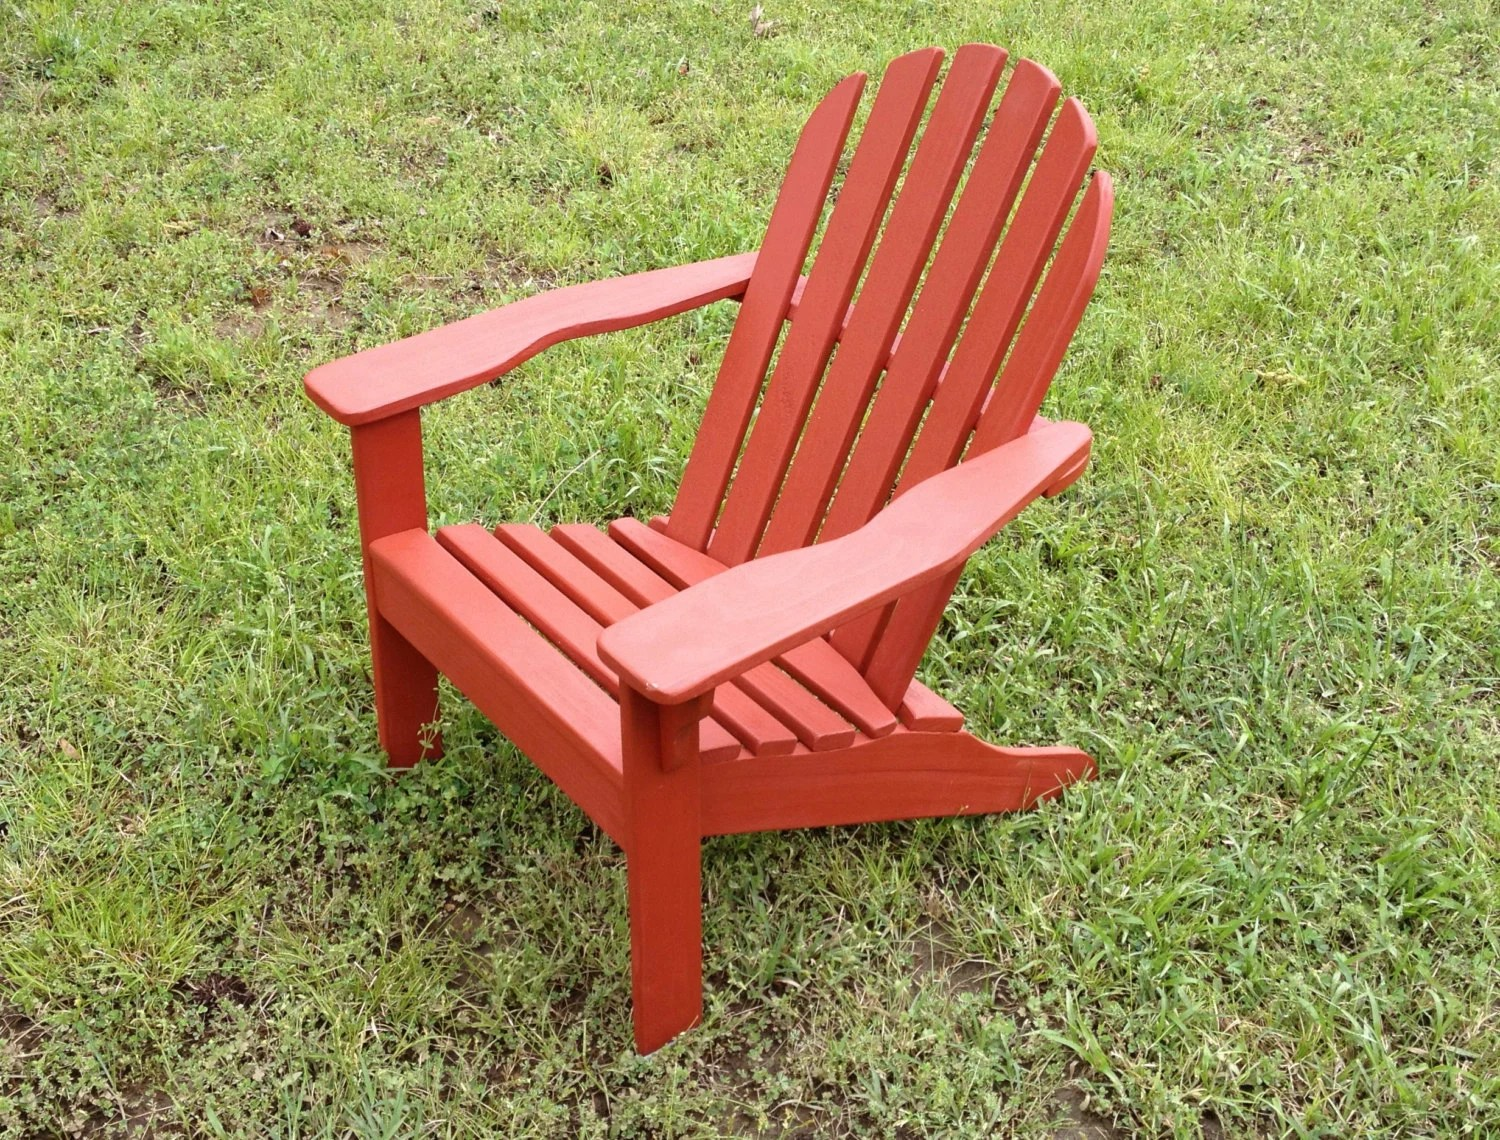 Childs Adirondack Chair by BigCreekMercantile on Etsy